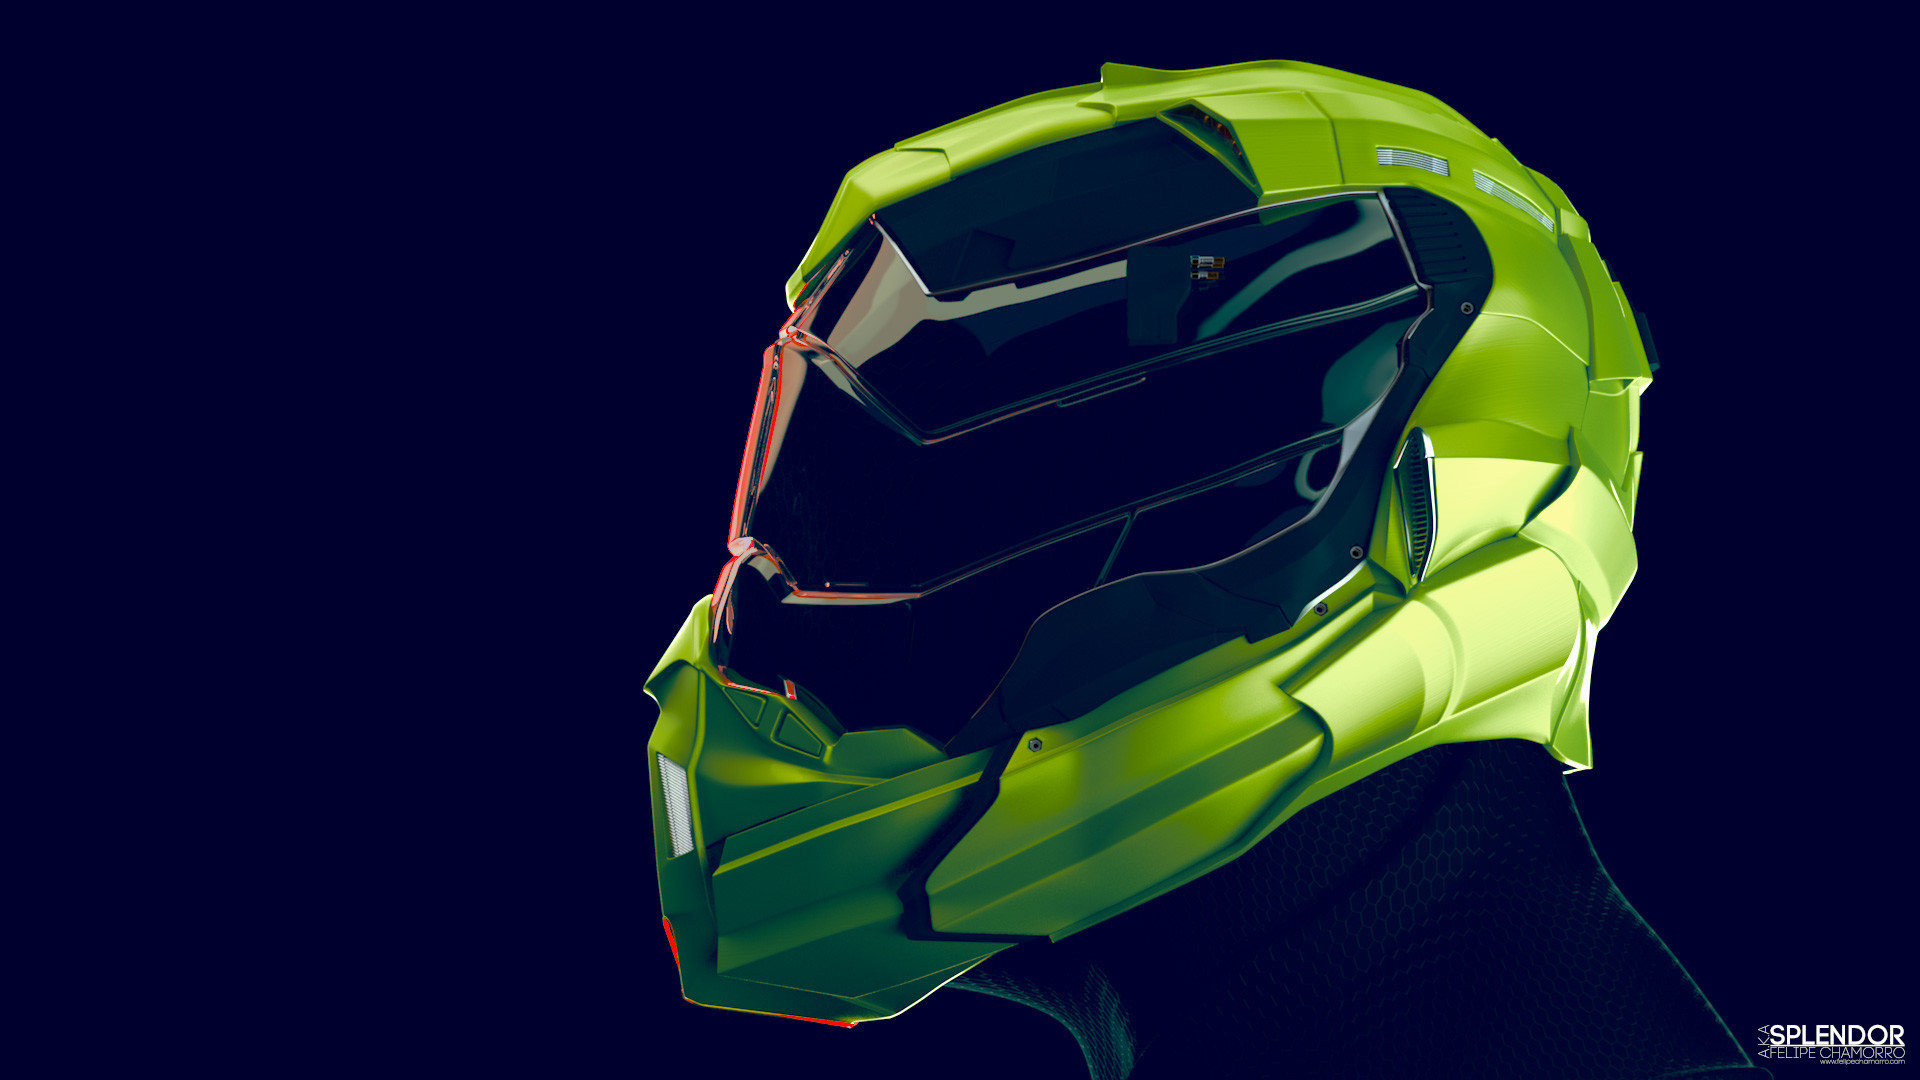 Splendor Helmet SX5 Look Dev